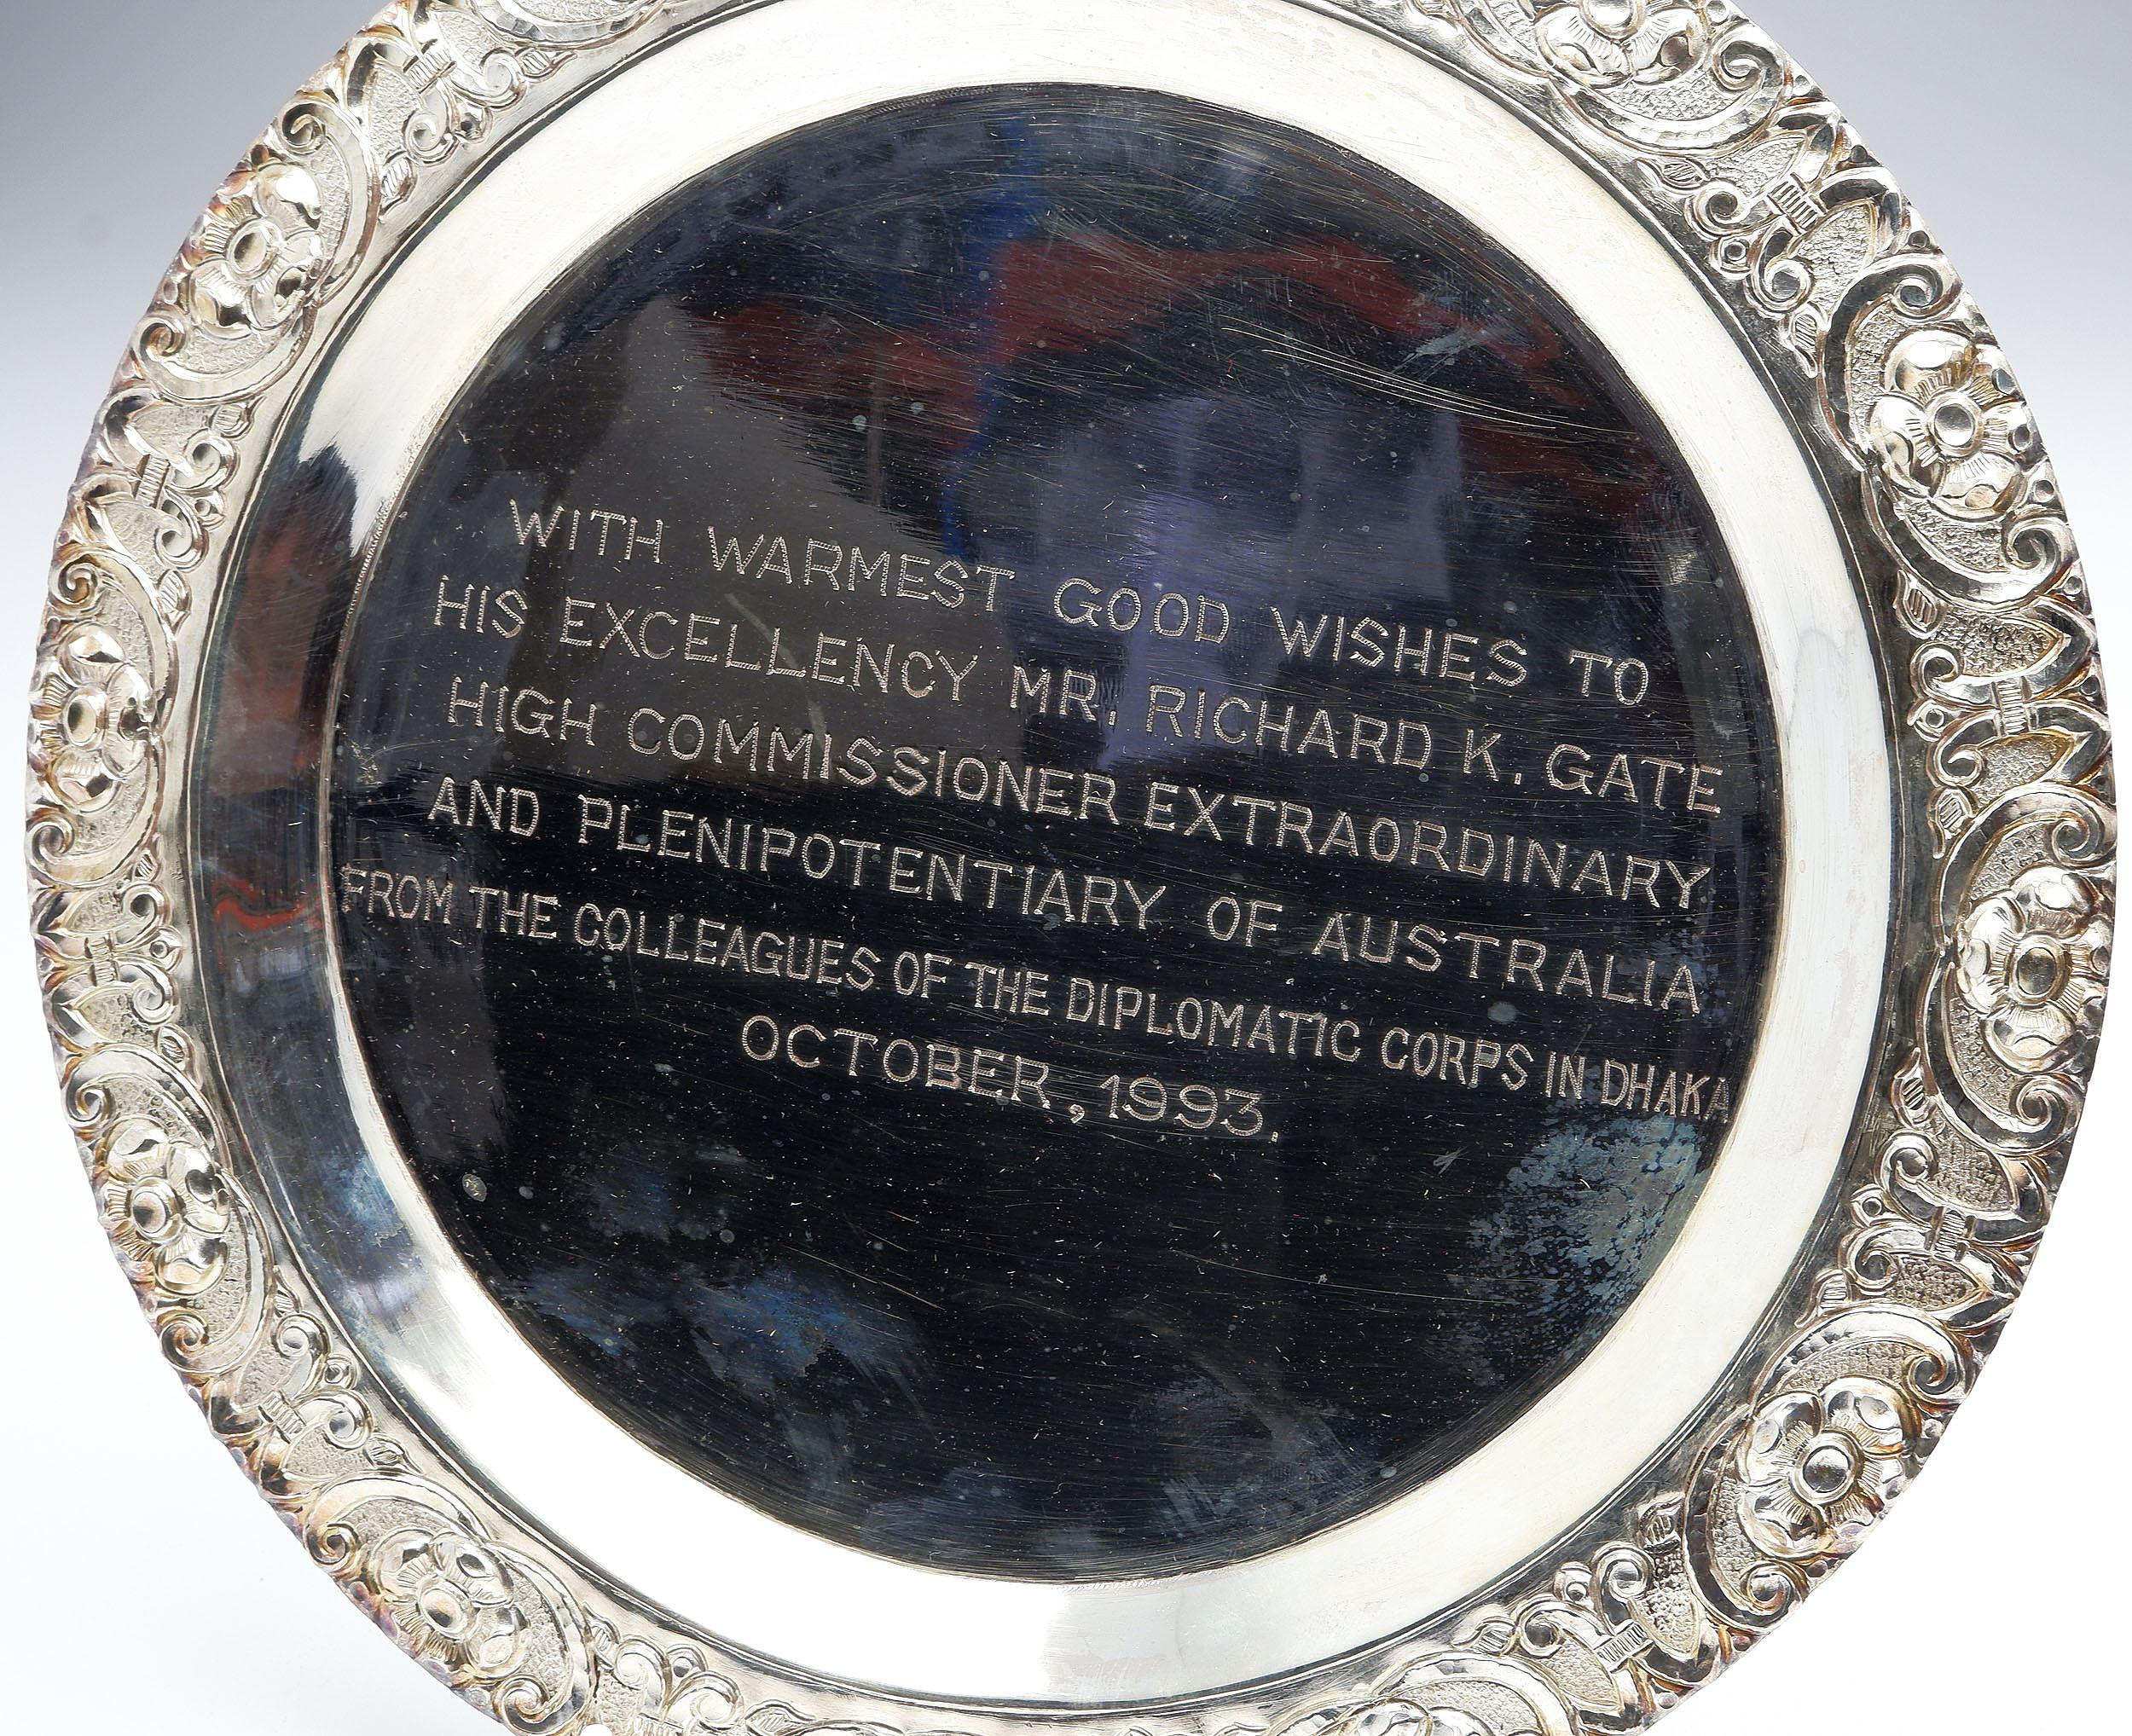 'Heavy Silver Charger Presented to Richard Gate By the Diplomatic Corps in Dhaka 1993,  589g'